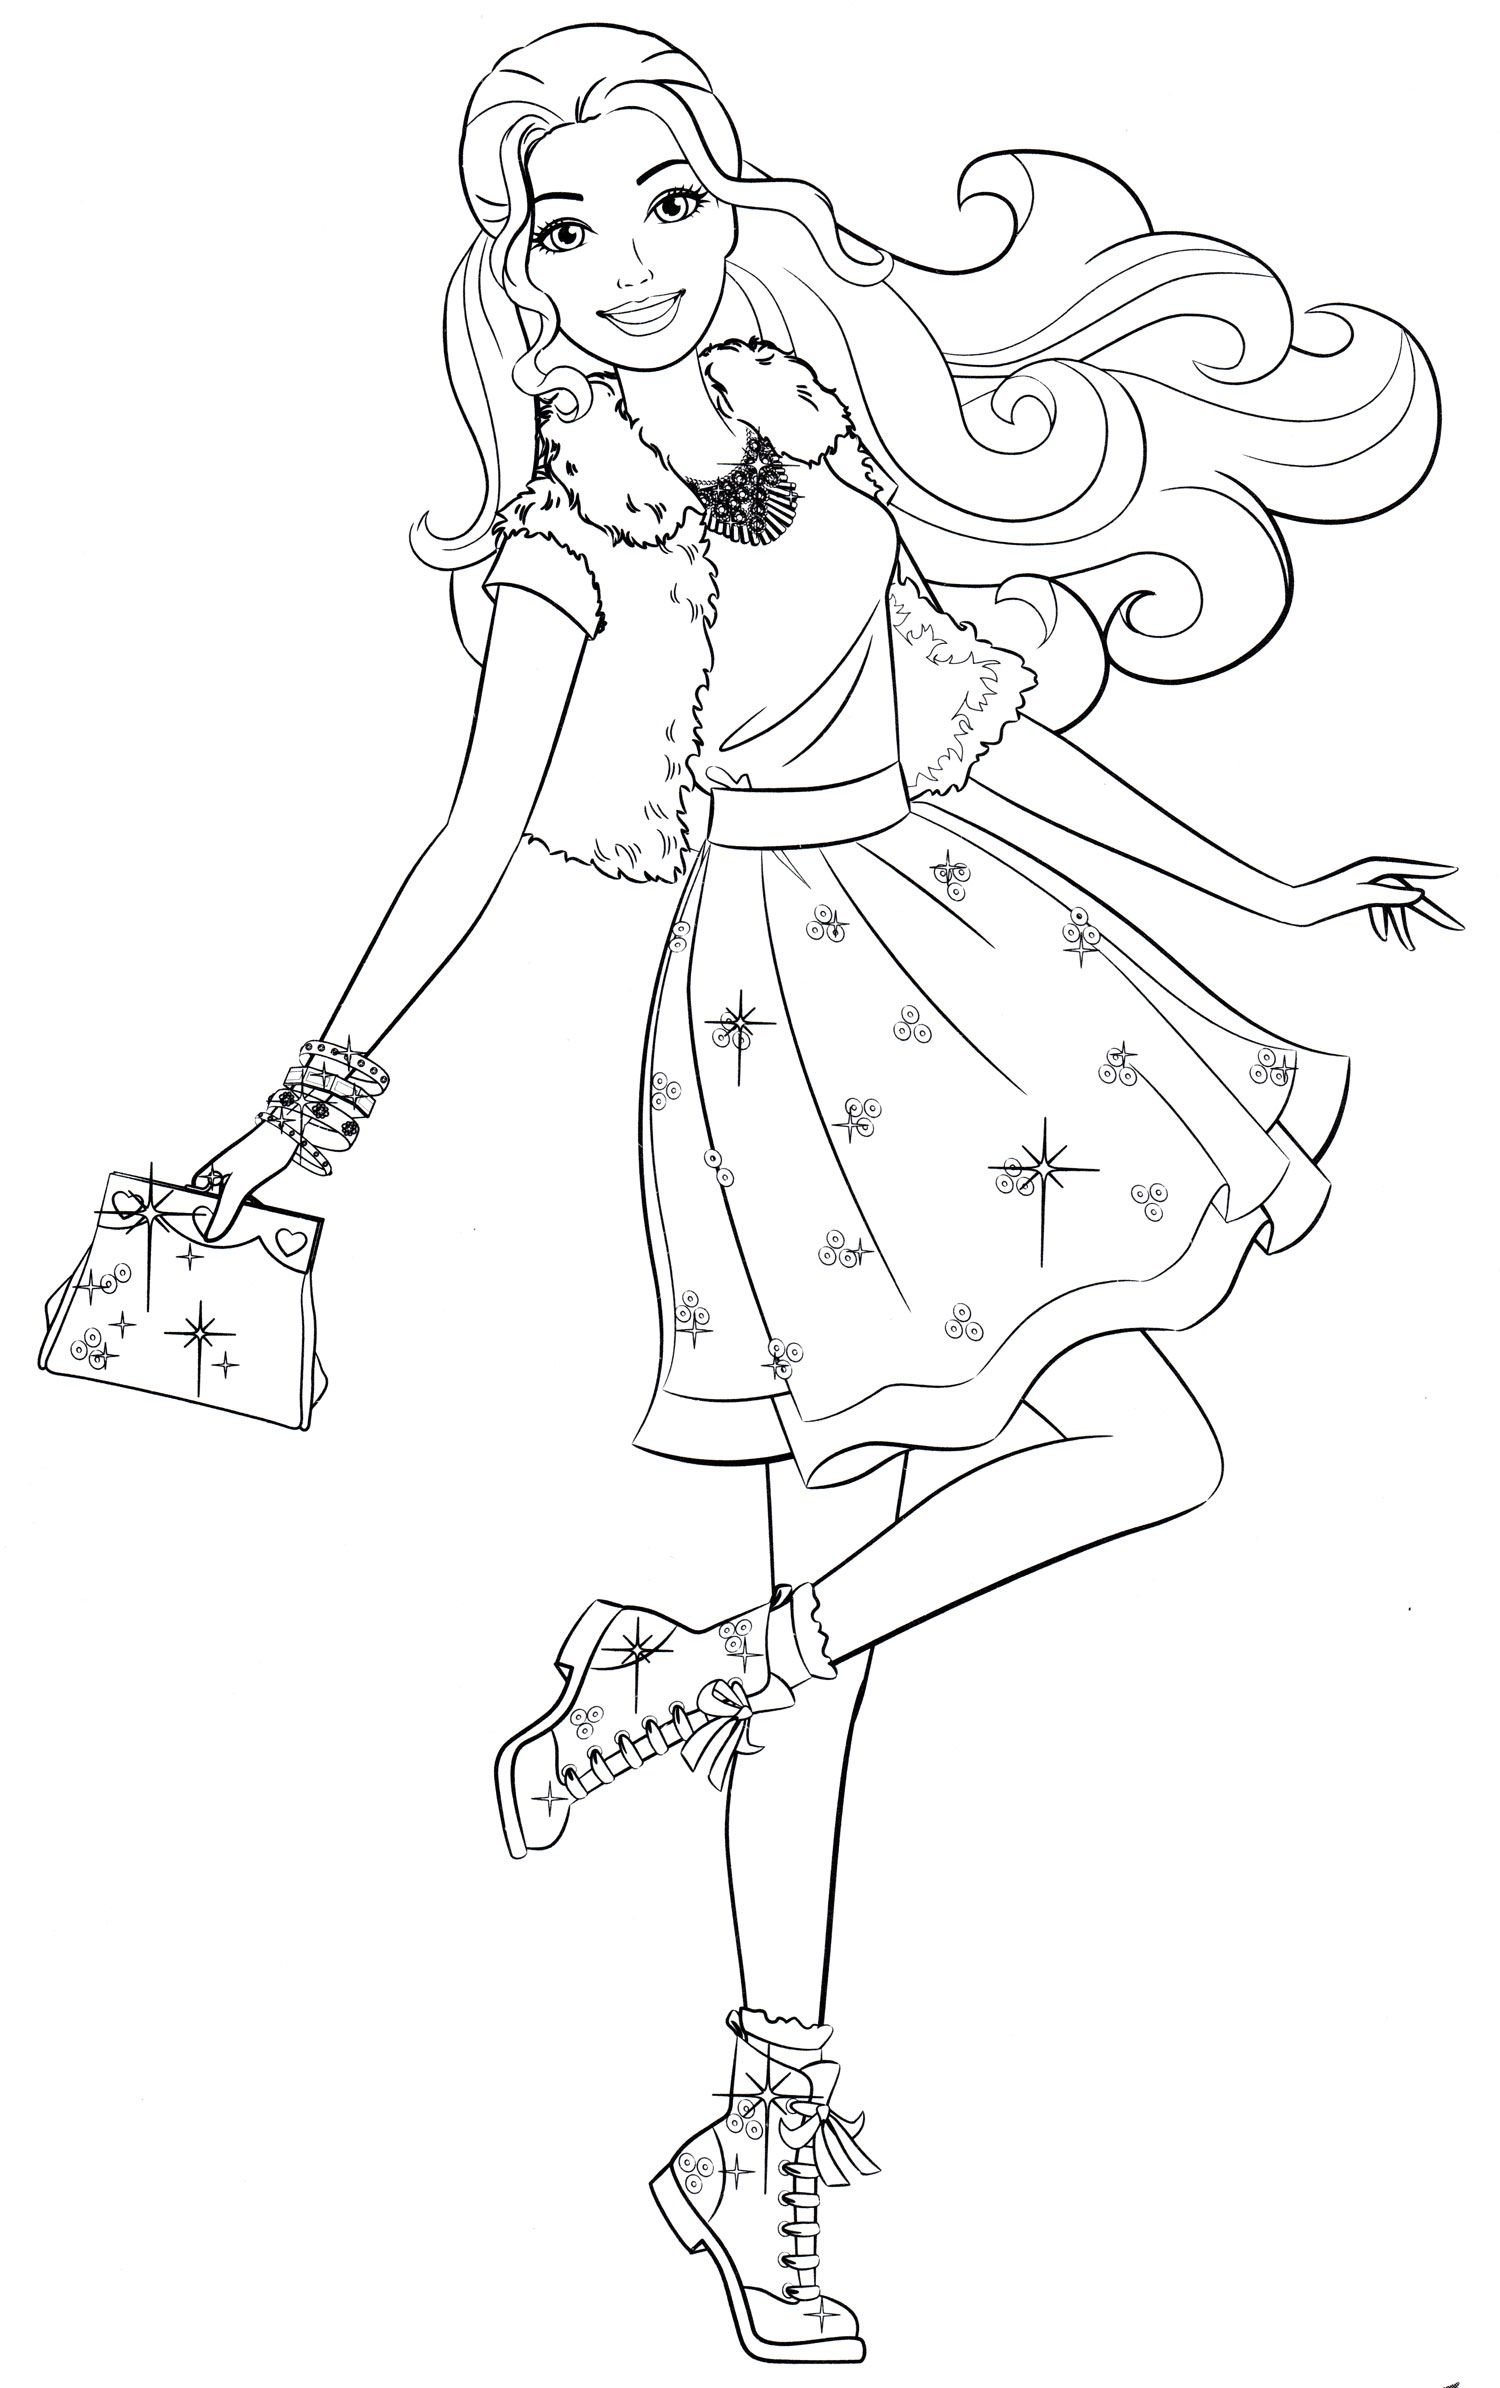 Pin By Warde Mhamed On Moi Sohranennye Materialy Barbie Coloring Barbie Coloring Pages Cartoon Coloring Pages